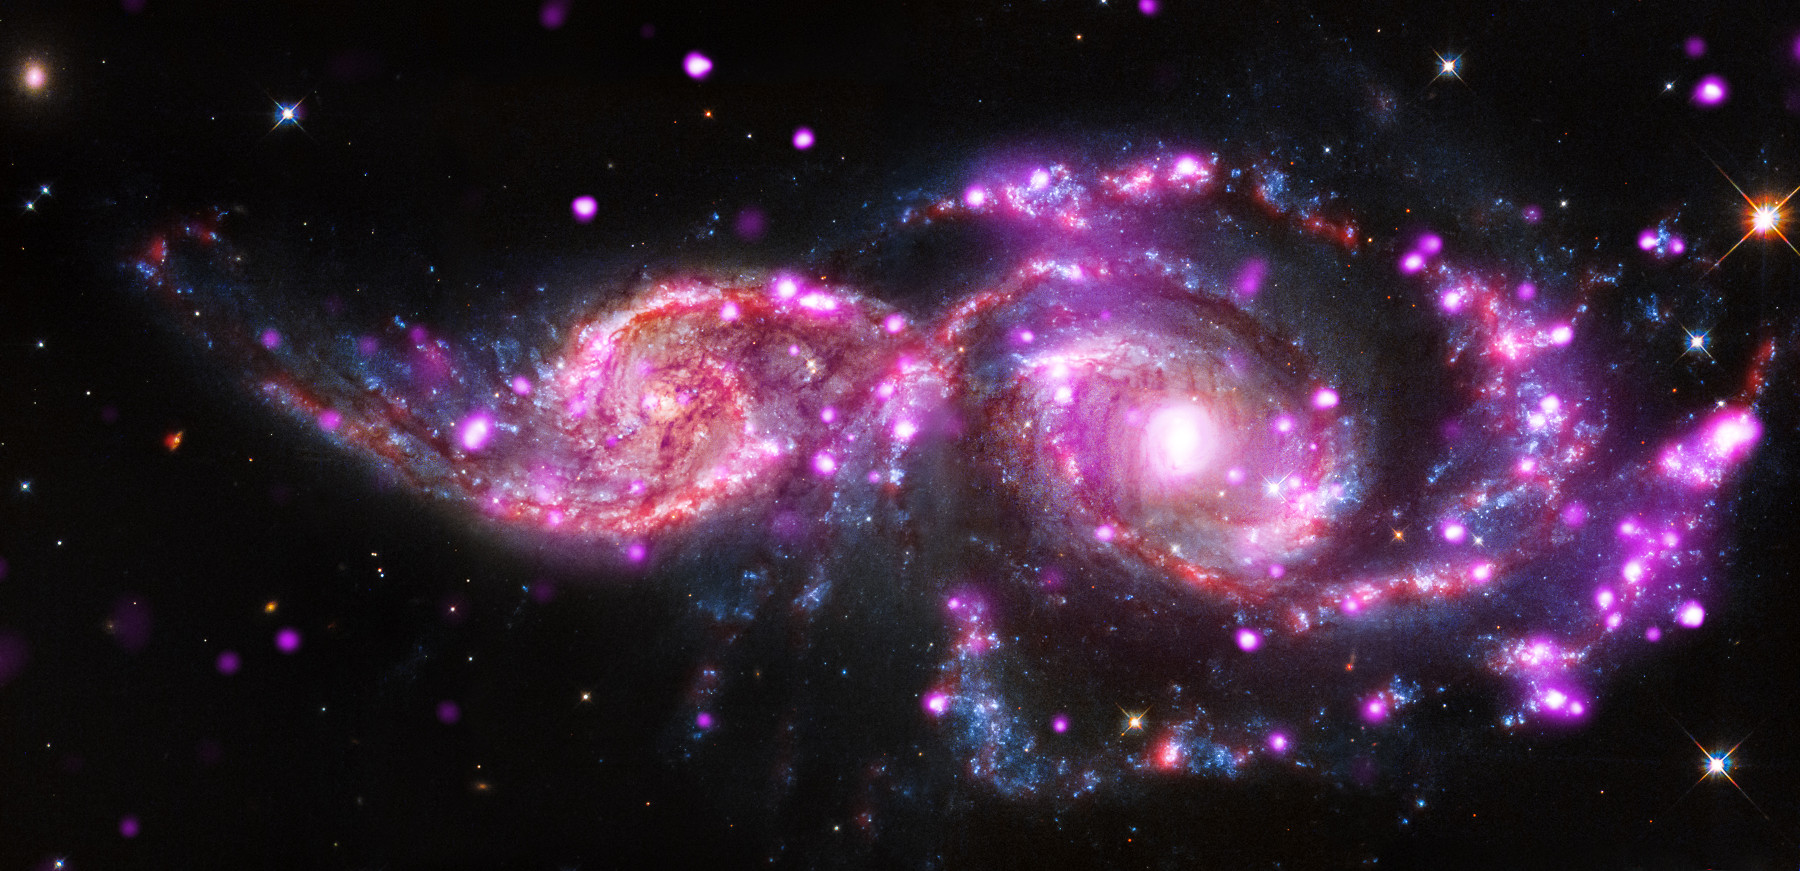 NGC 2207 and IC 2163 in the constellation of Ursa Major are galaxies in the act of a grazing collision. This new composite image of the system contains X-rays from Chandra (pink) along with optical (blue, white, orange and brown) plus infrared data (red). Image credit: X-ray: NASA/CXC/SAO/S.Mineo et al, Optical: NASA/STScI, Infrared: NASA/JPL-Caltech